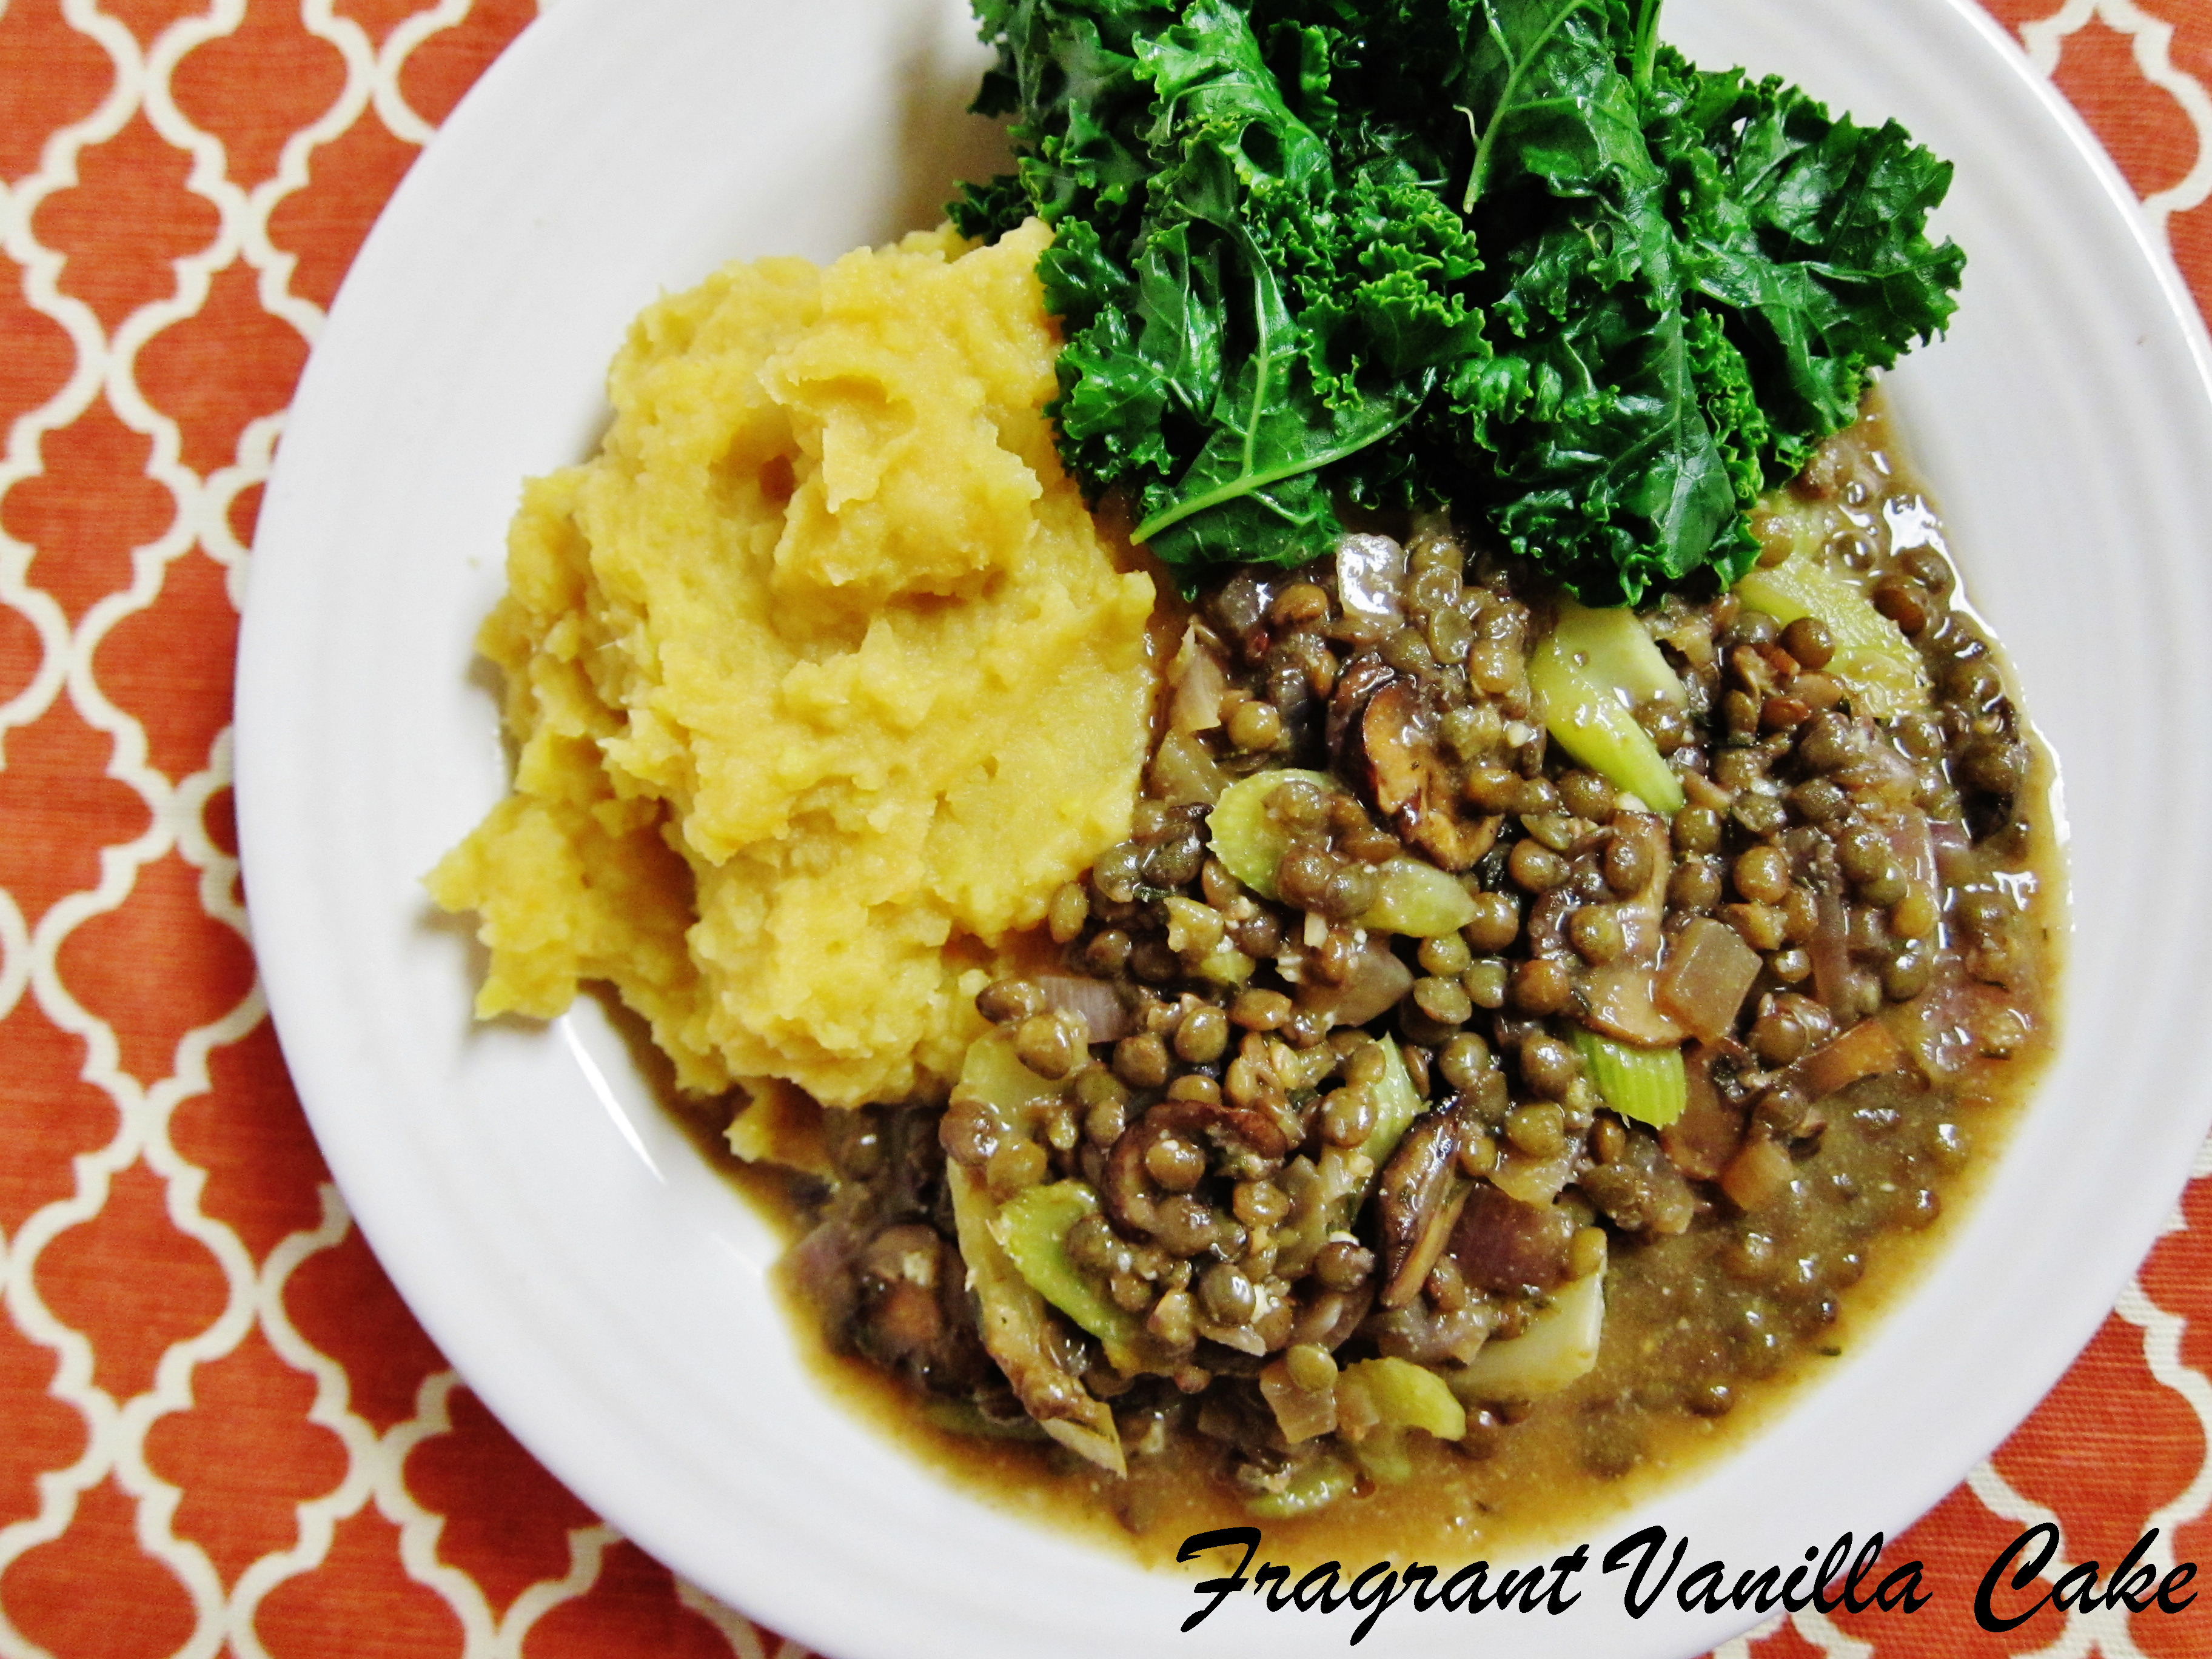 French Lentils in Mushroom Gravy with Mashed Sweet and Gold Potatoes